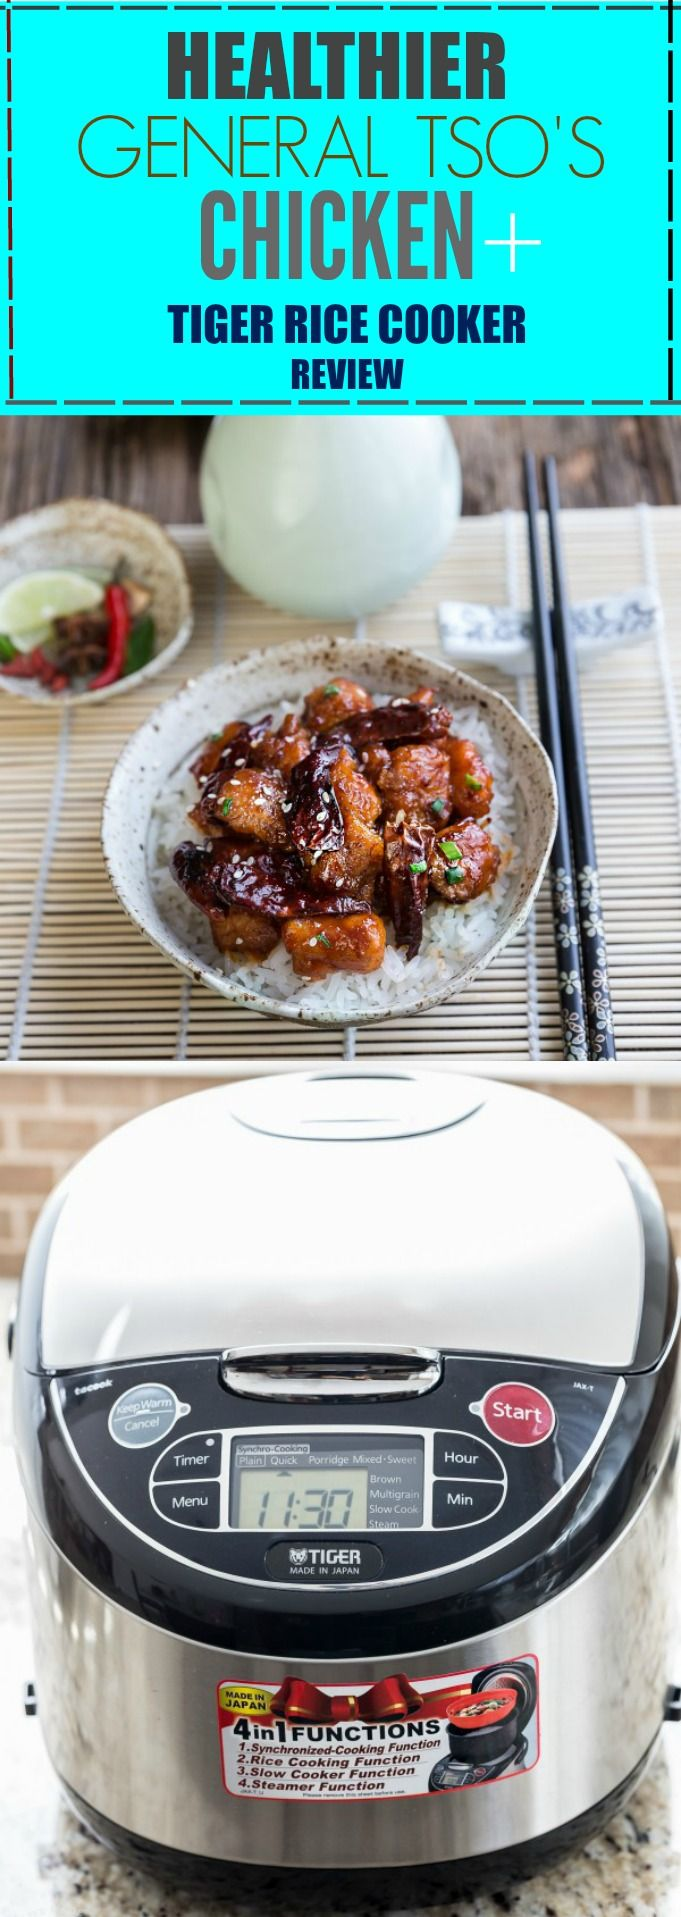 Healthier General Tso's Chicken withTiger JAX-T10U Rice Cooker & PDU-A30U Electric Water Boiler Review with Video